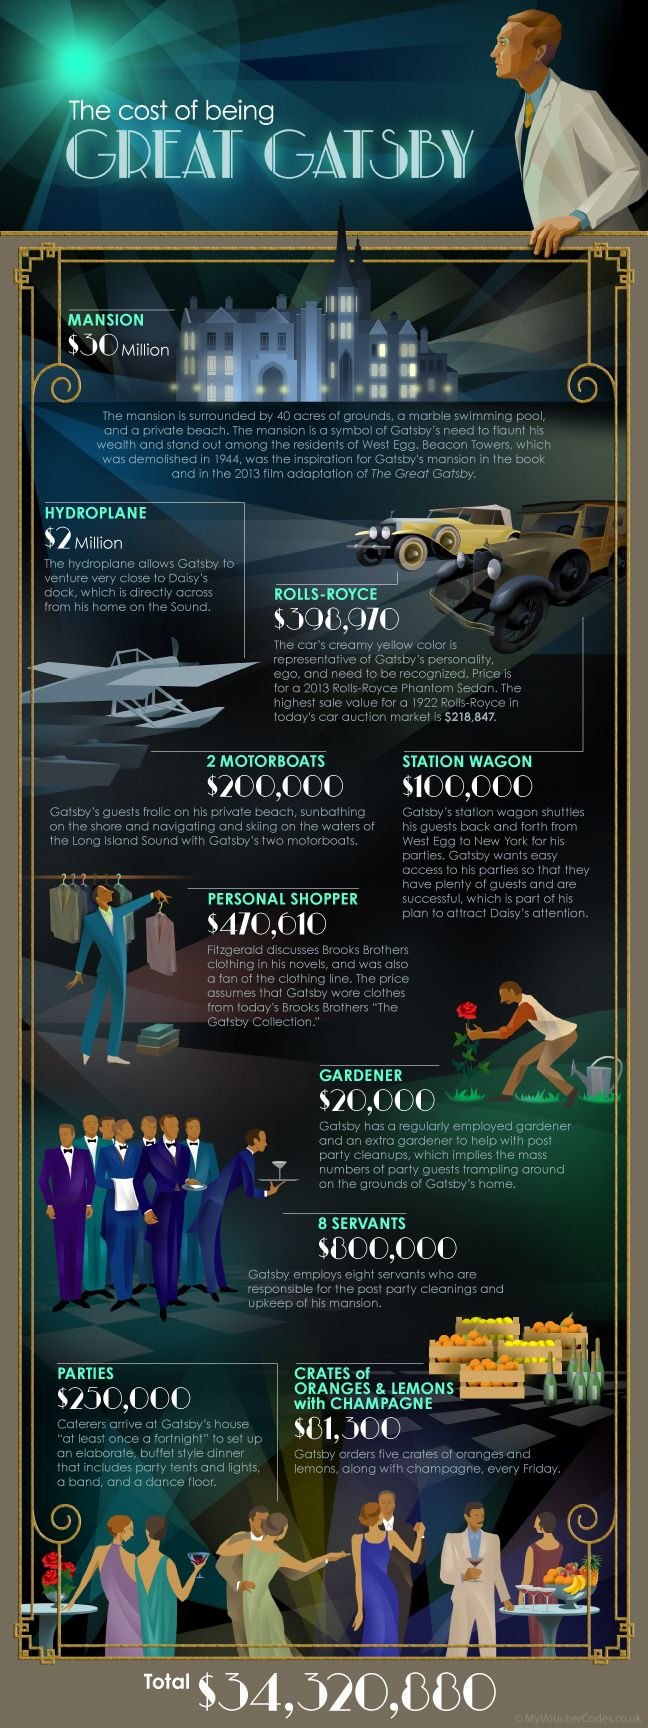 The Cost Of Being The Great Gatsby - Films - ShortList Magazine